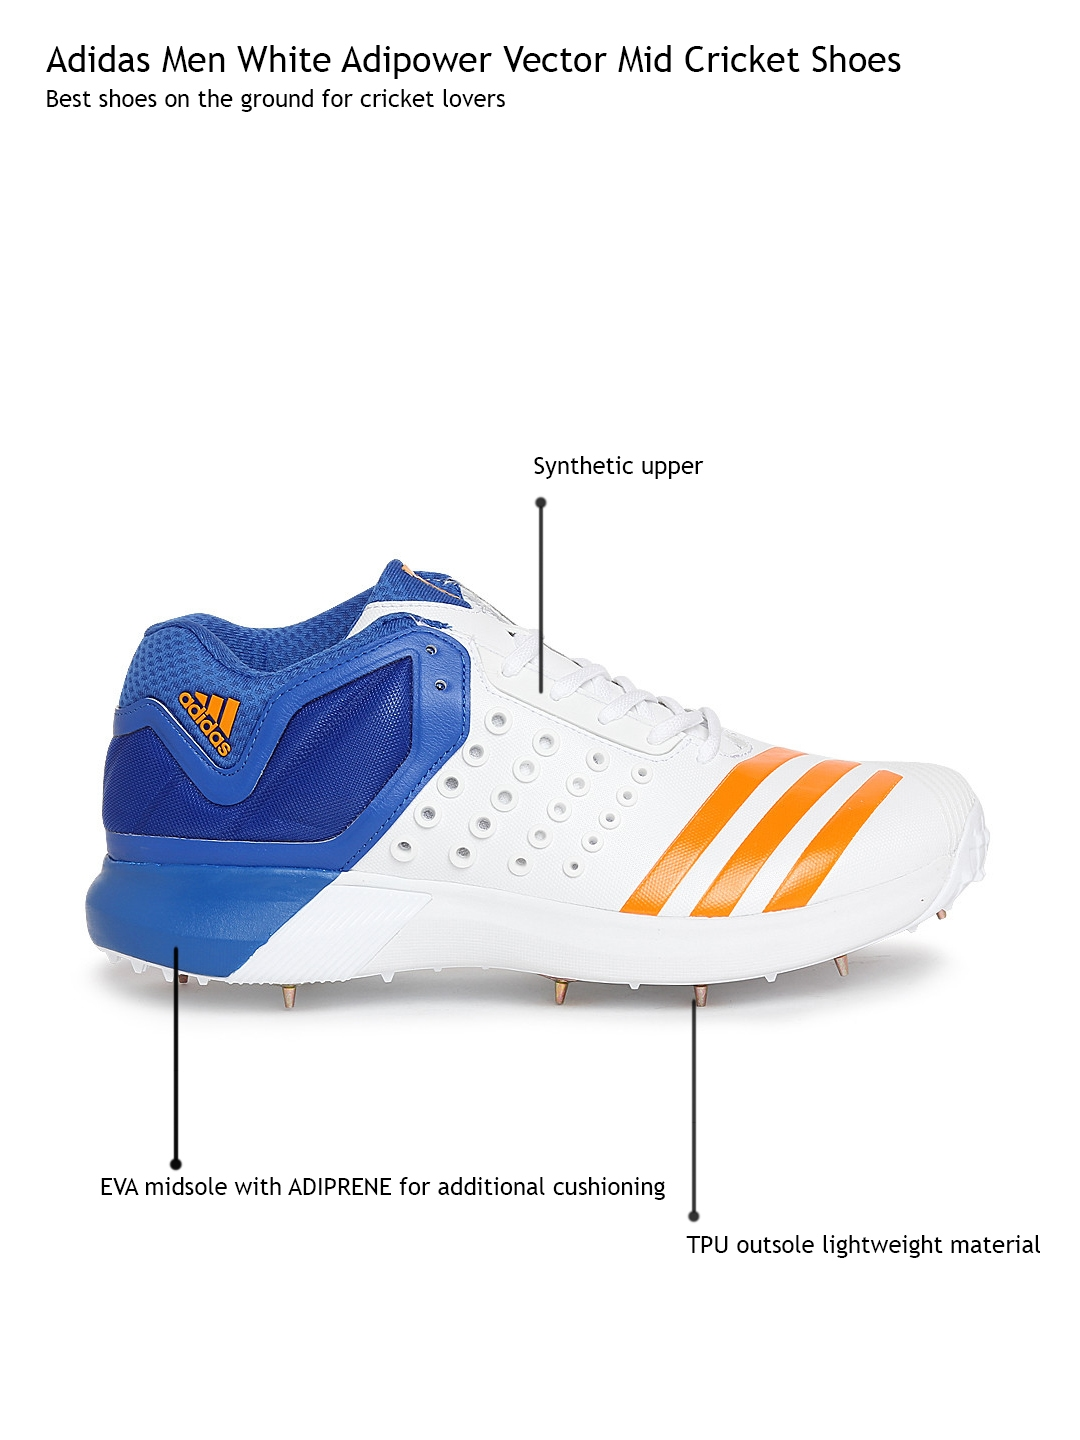 60769e98774bb6 Buy ADIDAS Men White Adipower Vector Mid Cricket Shoes - Sports ...